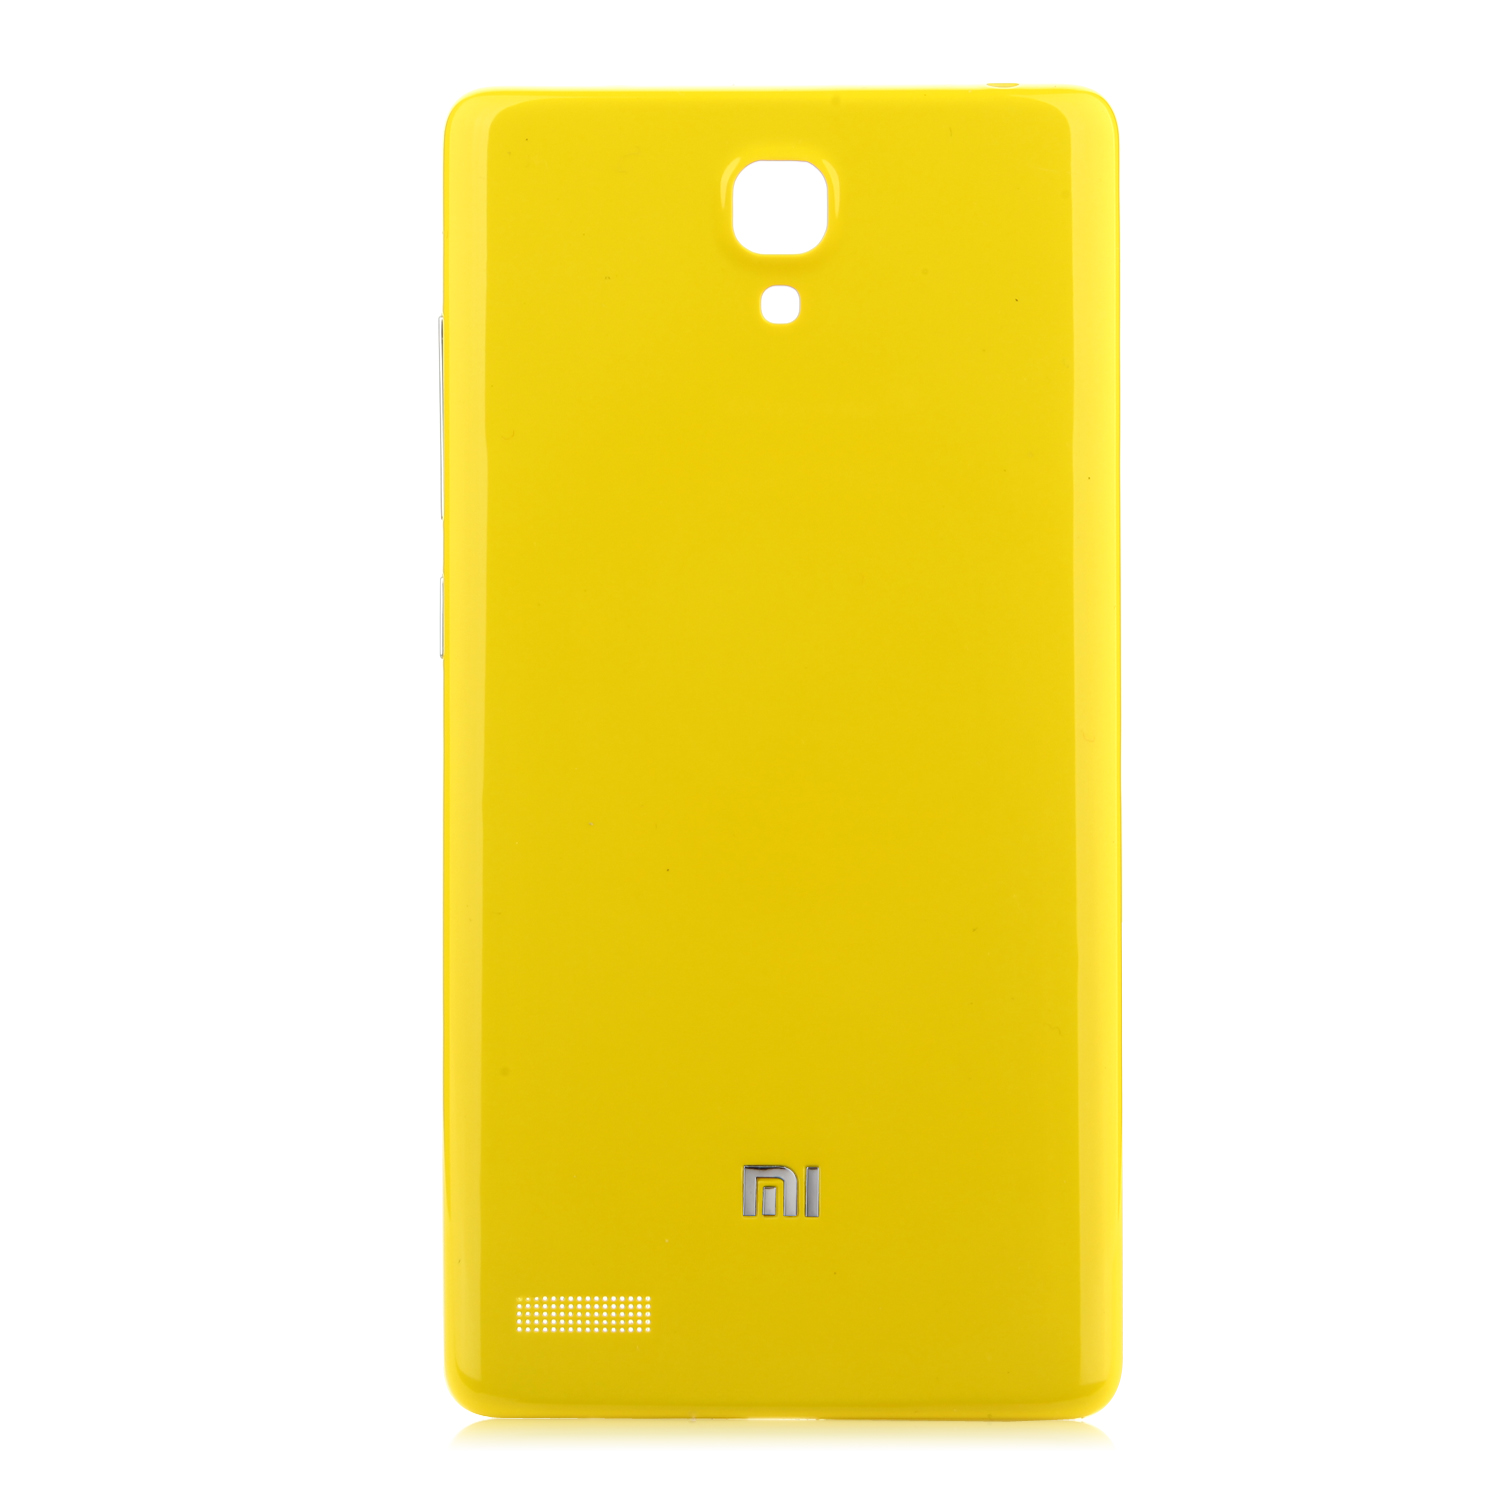 Battery Cover Back Case for XIAOMI Redmi Note Smartphone Yellow